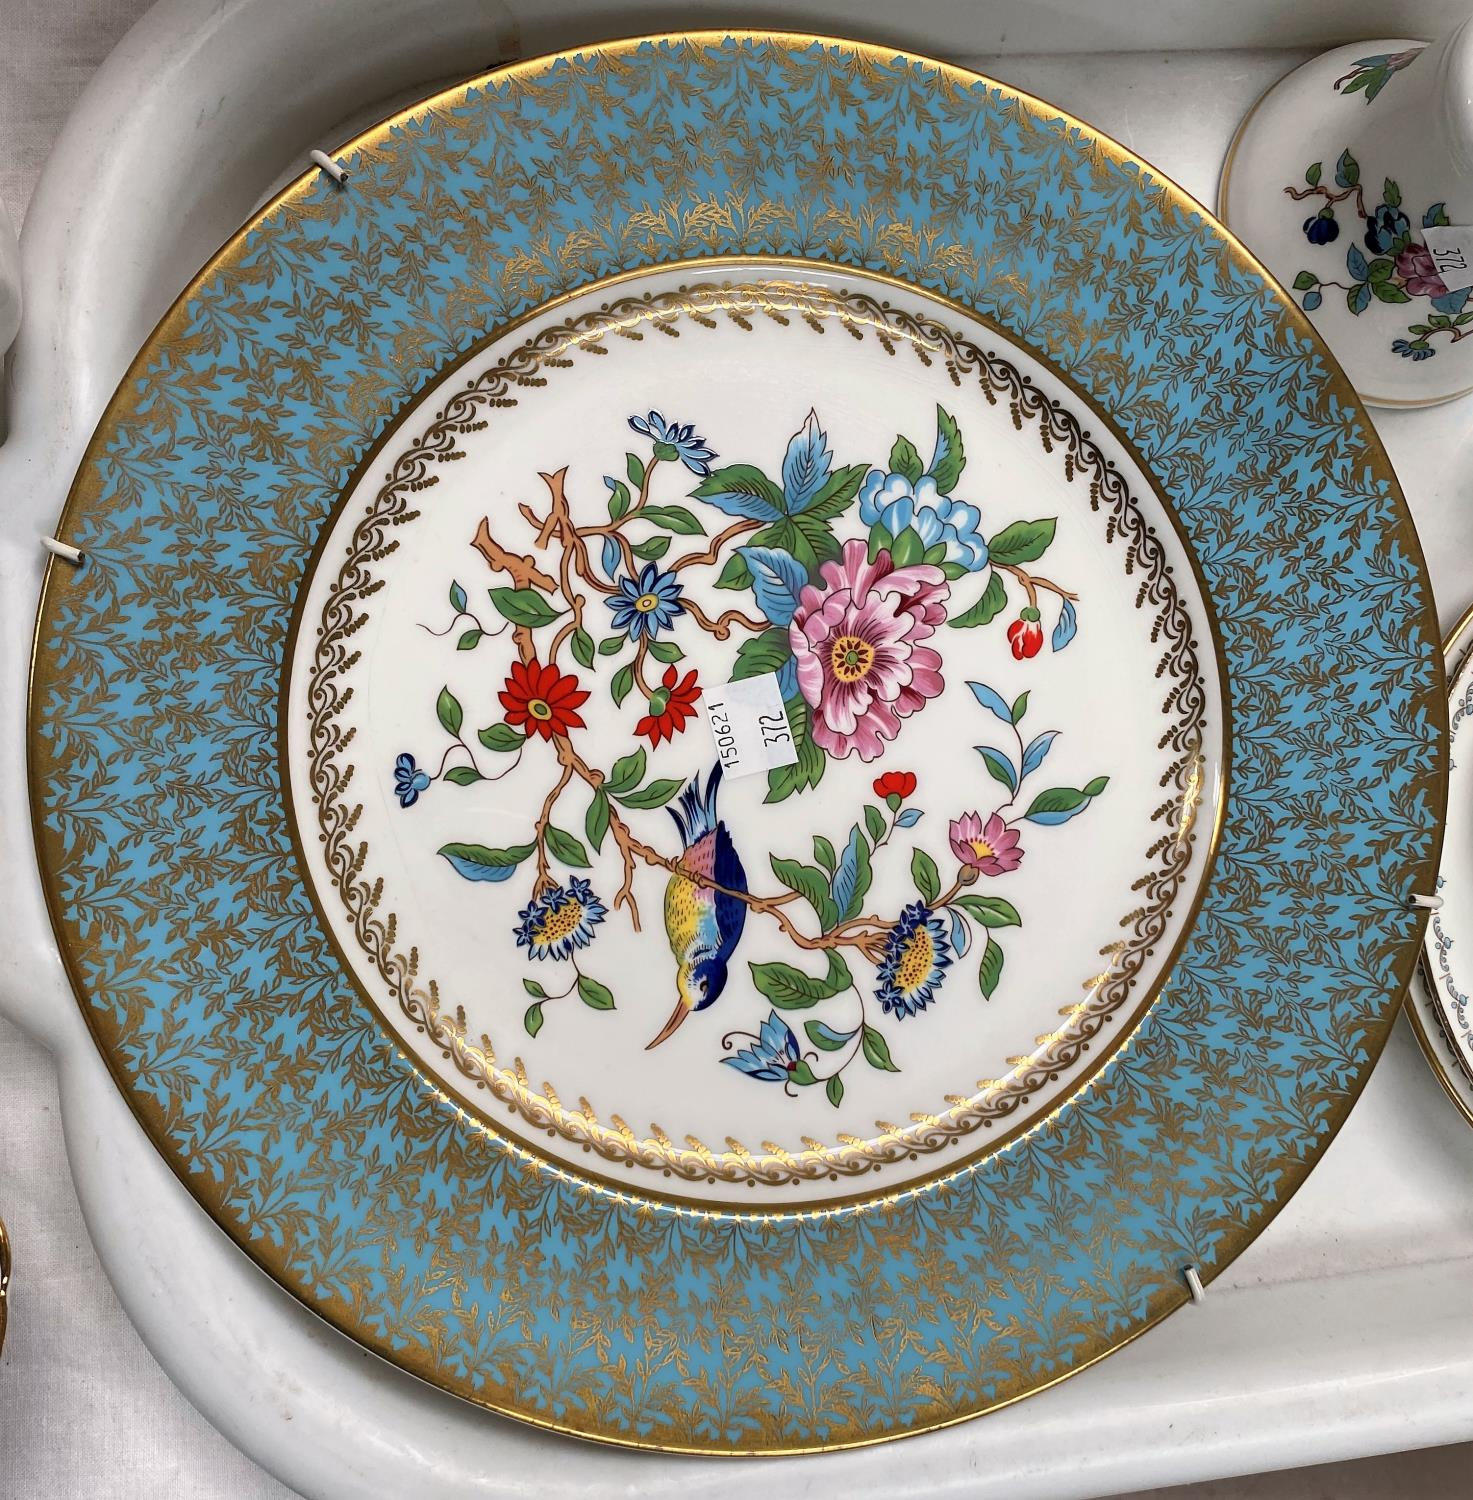 A selection of Aynsley china and trinket ware, 20 pieces approx - Image 3 of 3